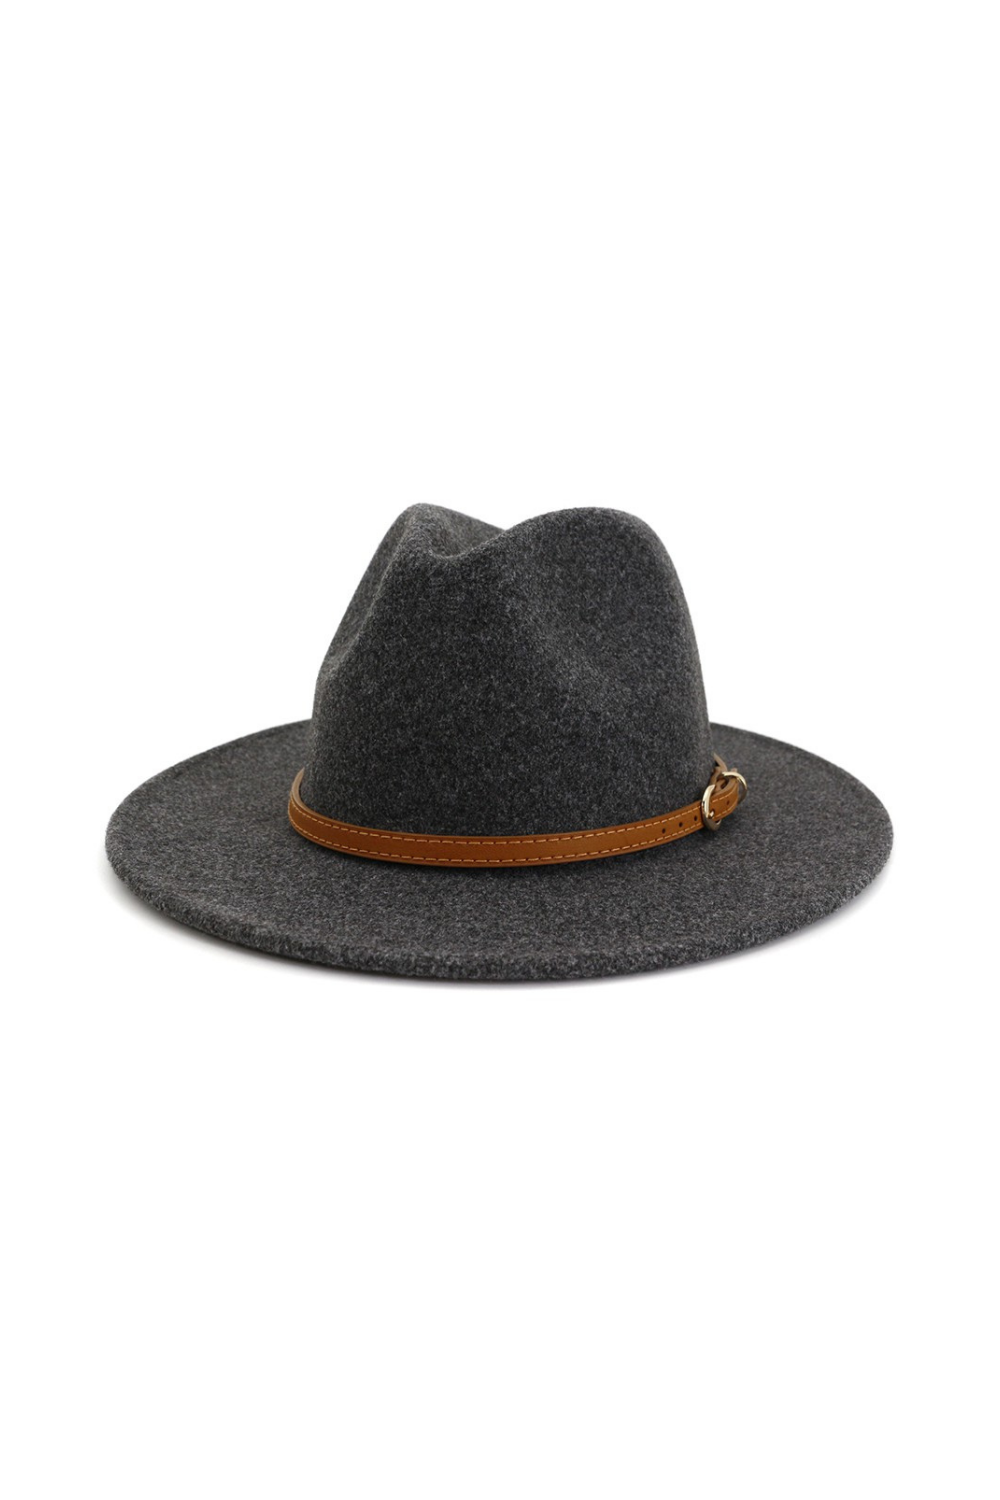 Rebel Without a Cause Dark Grey Panama Hat